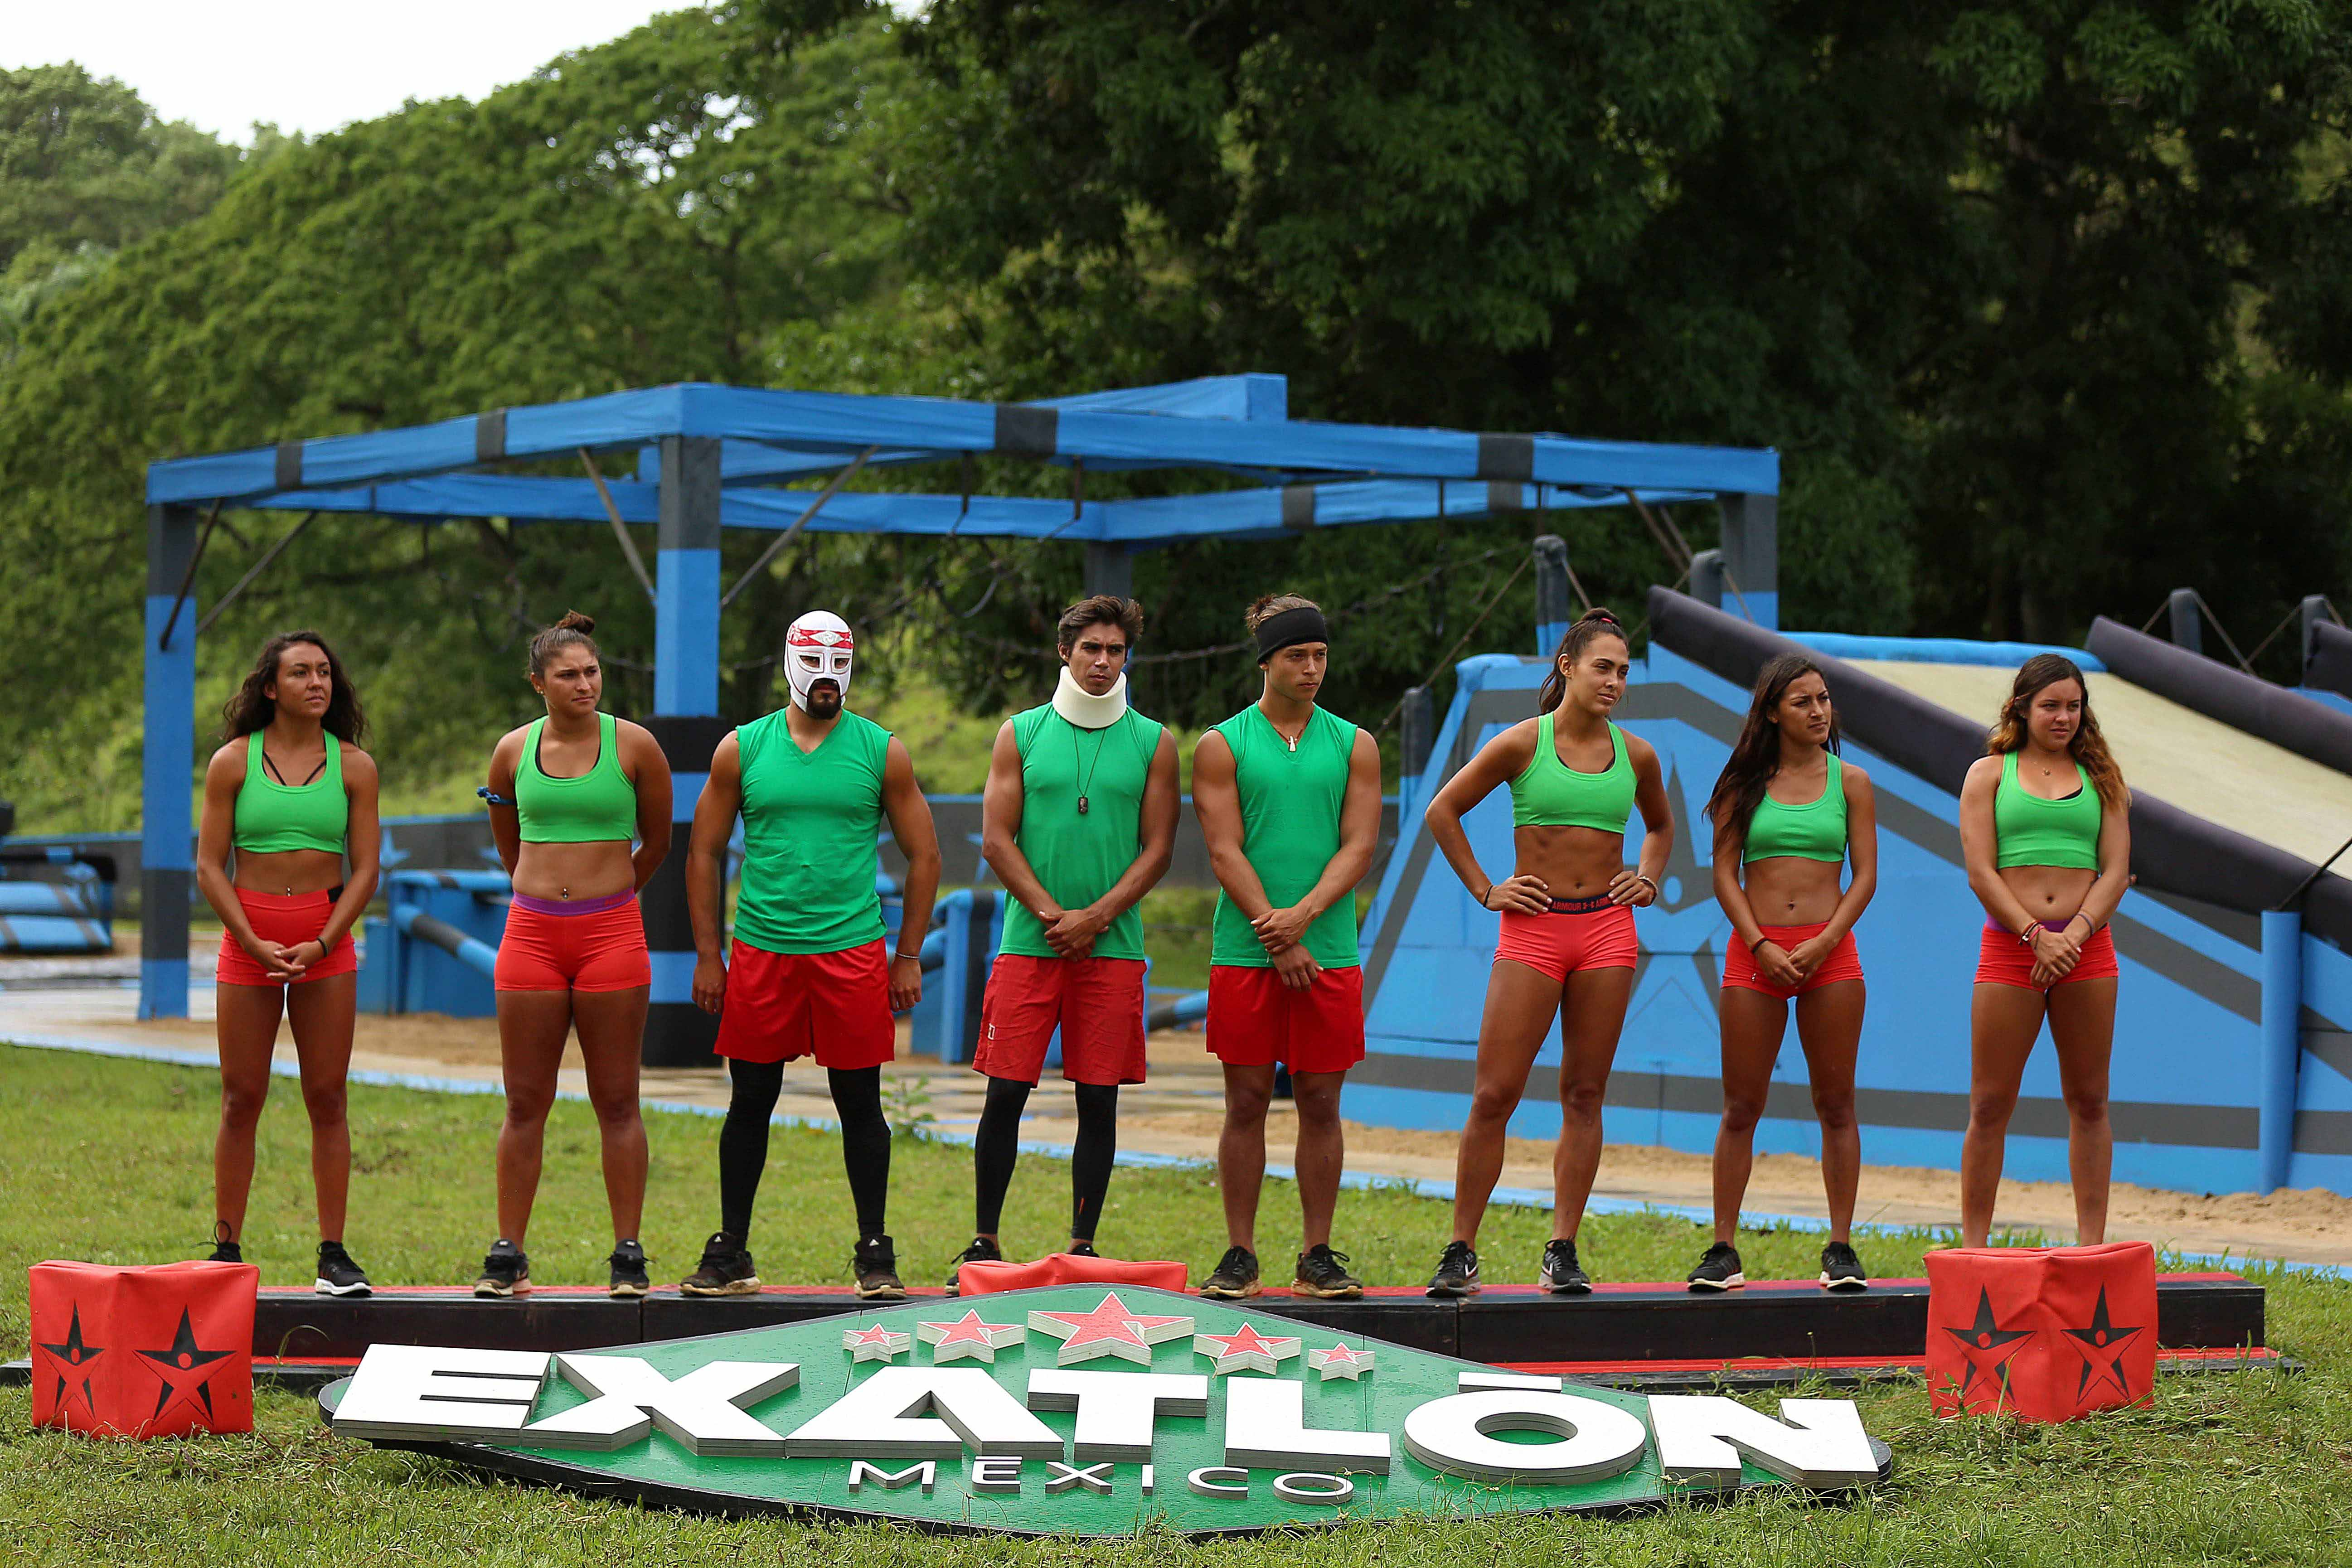 In Mexico for the week of August 13 to 19, Exatlon Mexico was the series with greatest engagement overall